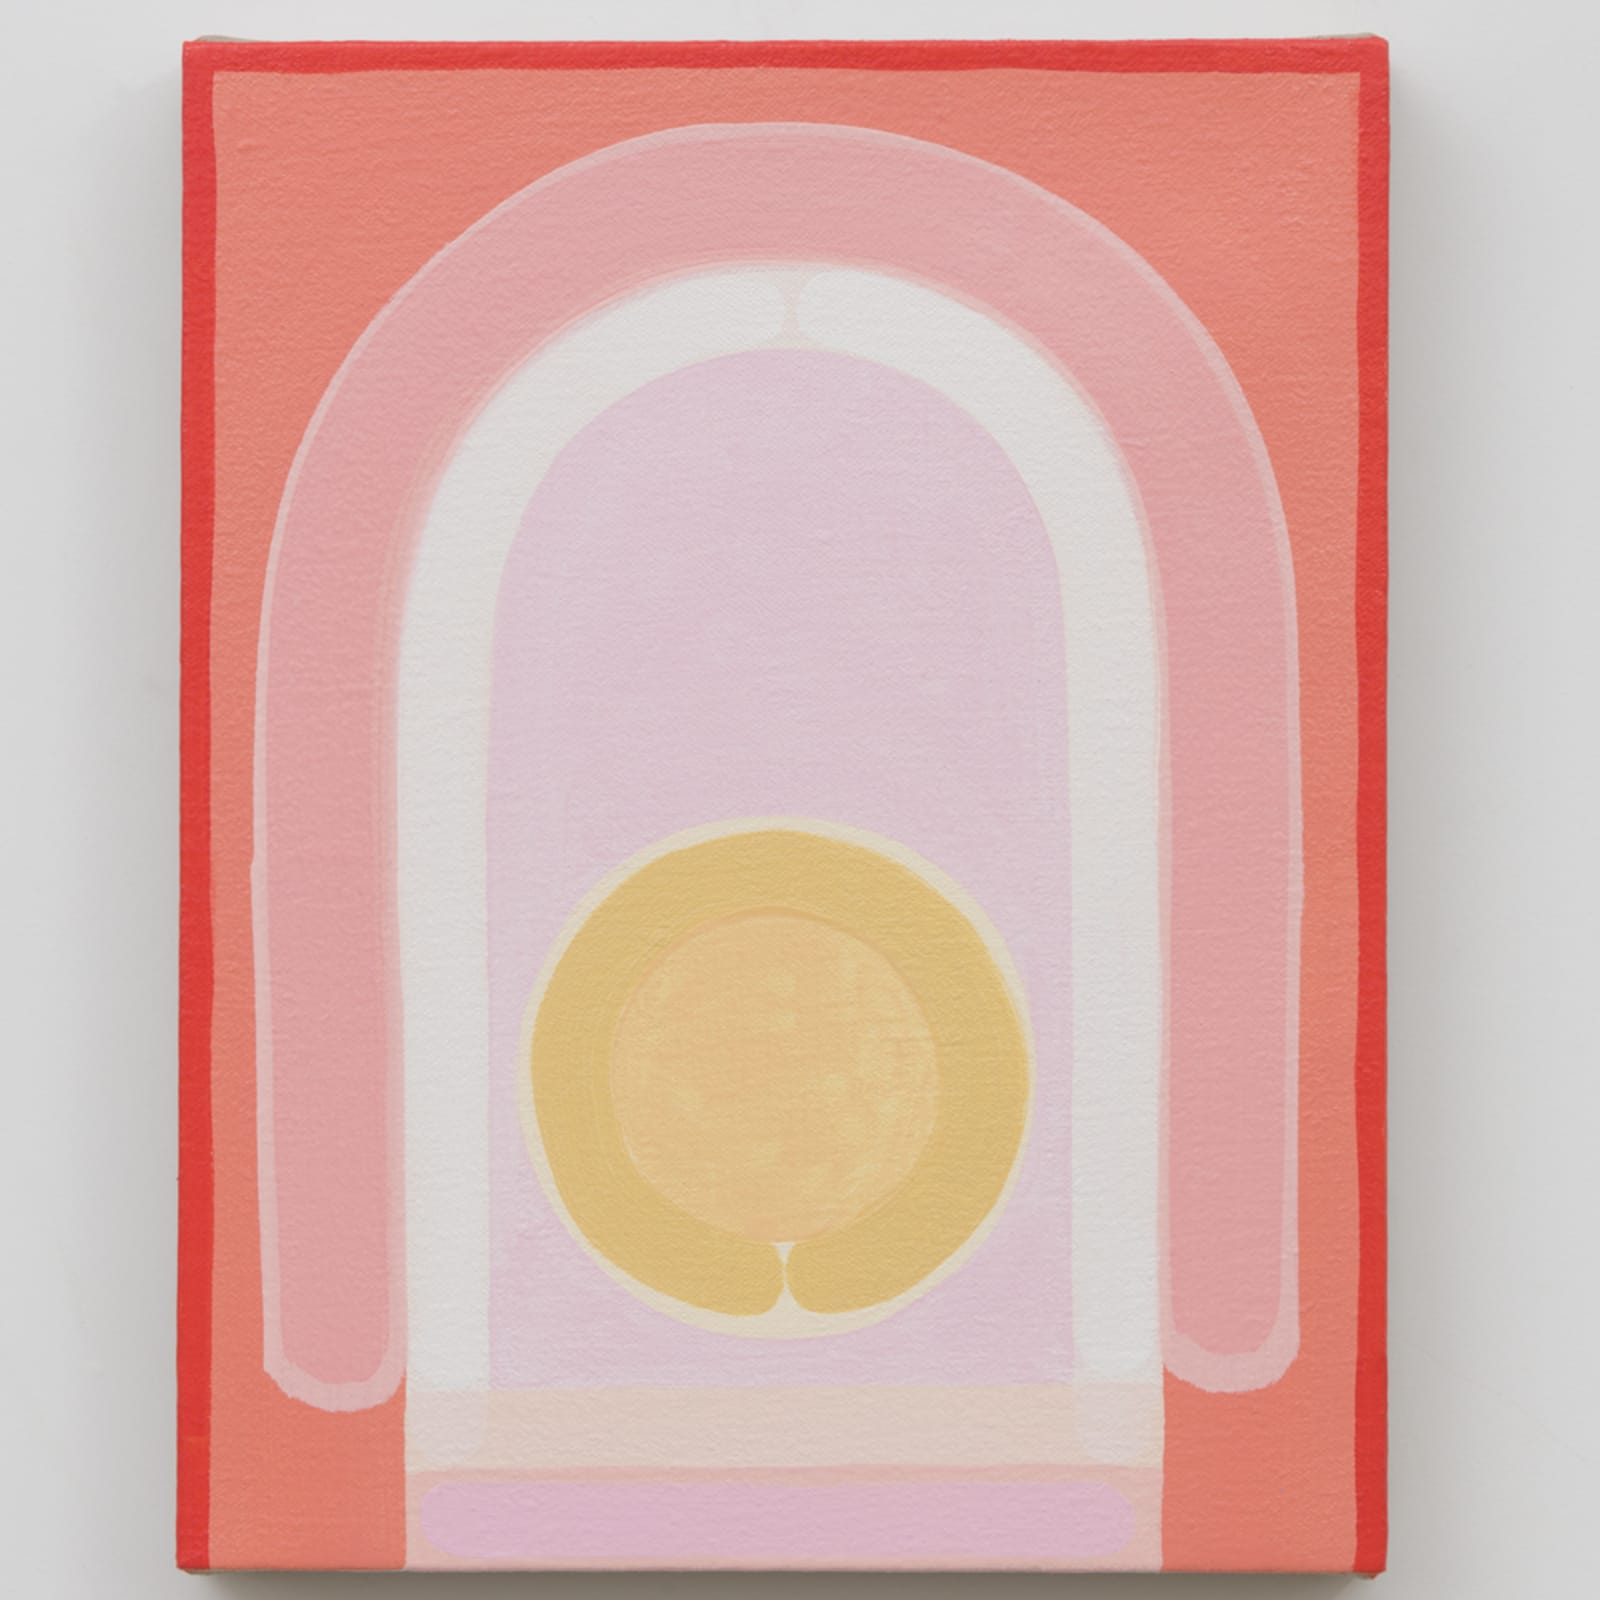 Lily Stockman  Pontormo's Rainbow, 2018  Oil on linen  14 x 11 inches